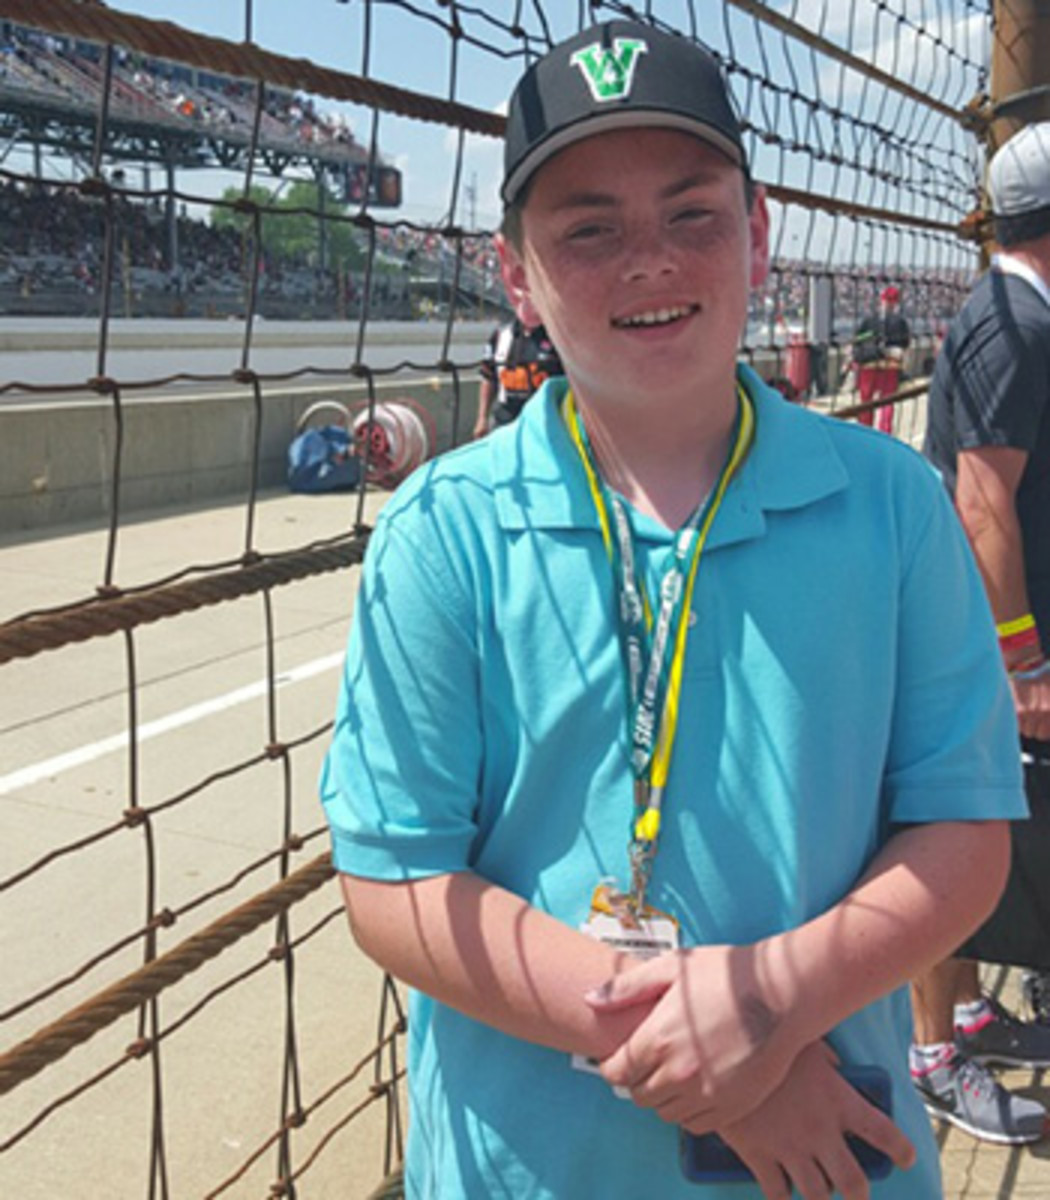 indianapolis 500 behind the scenes